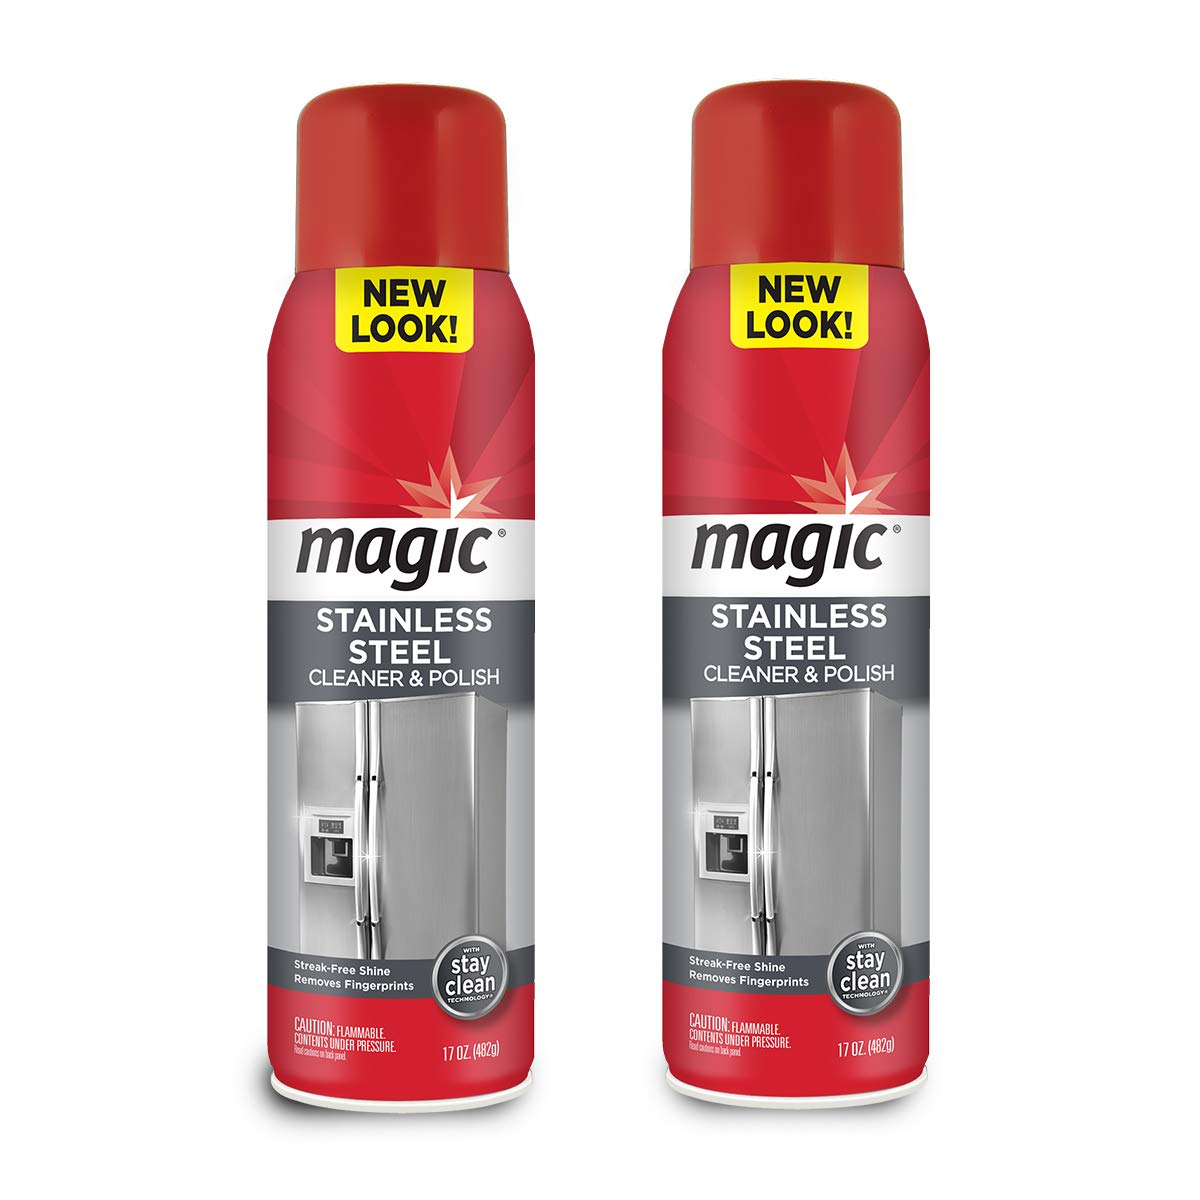 Magic Stainless Steel Cleaner Aerosol - 17 Ounce (2 Pack)- Removes Fingerprints Residue Water Marks and Grease from Appliances - Refrigerator Dishwasher Oven Grill